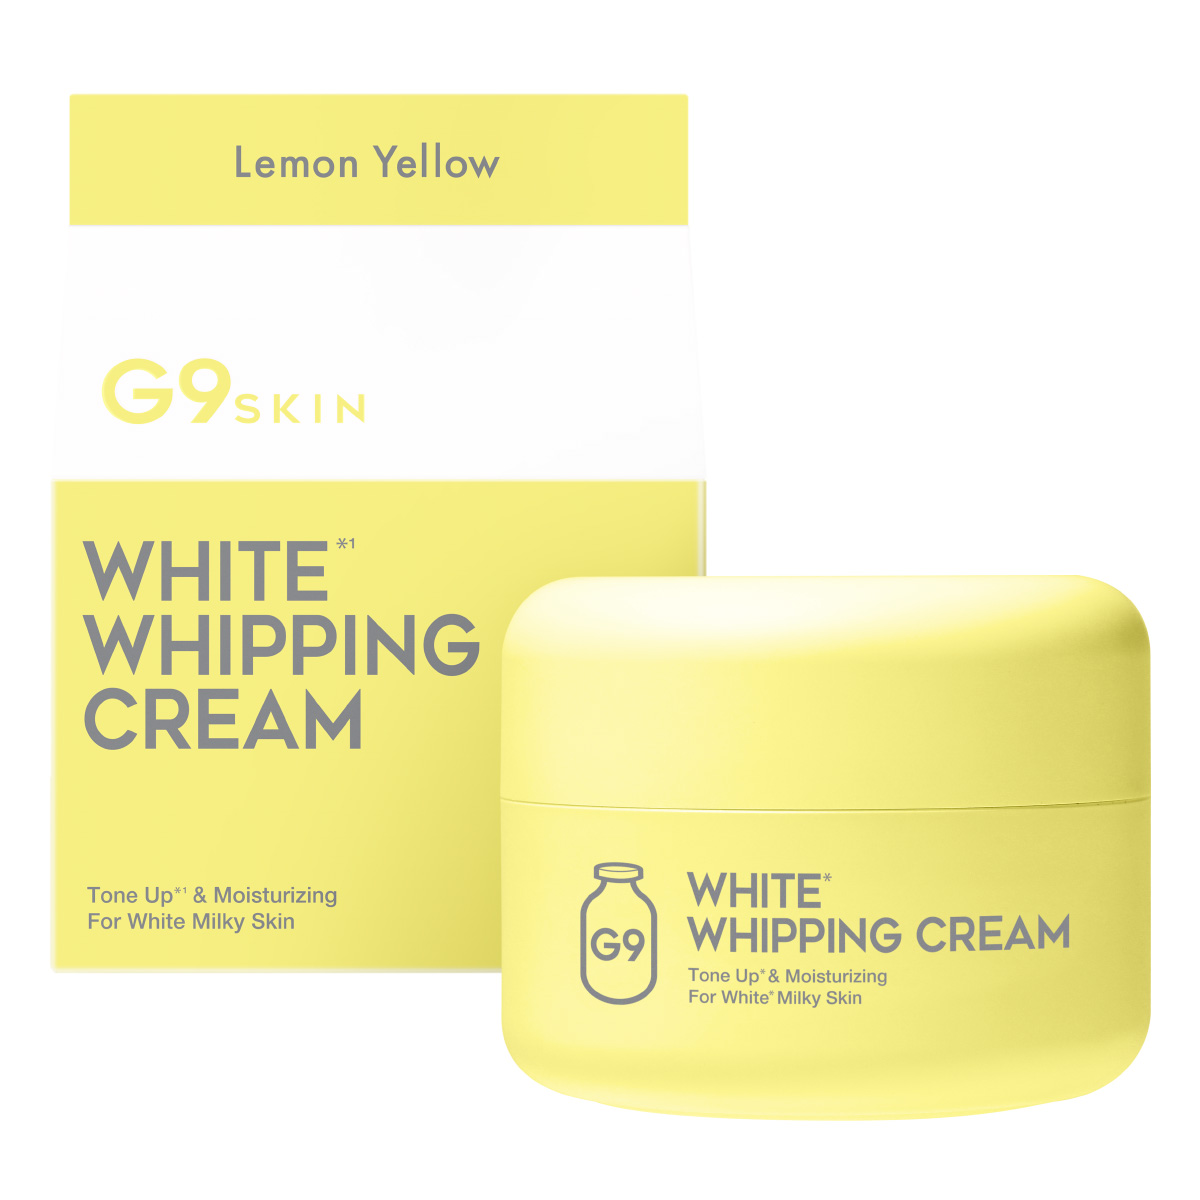 G9 SKIN WHITE WHIPPING CREAM #LEMON YELLOW